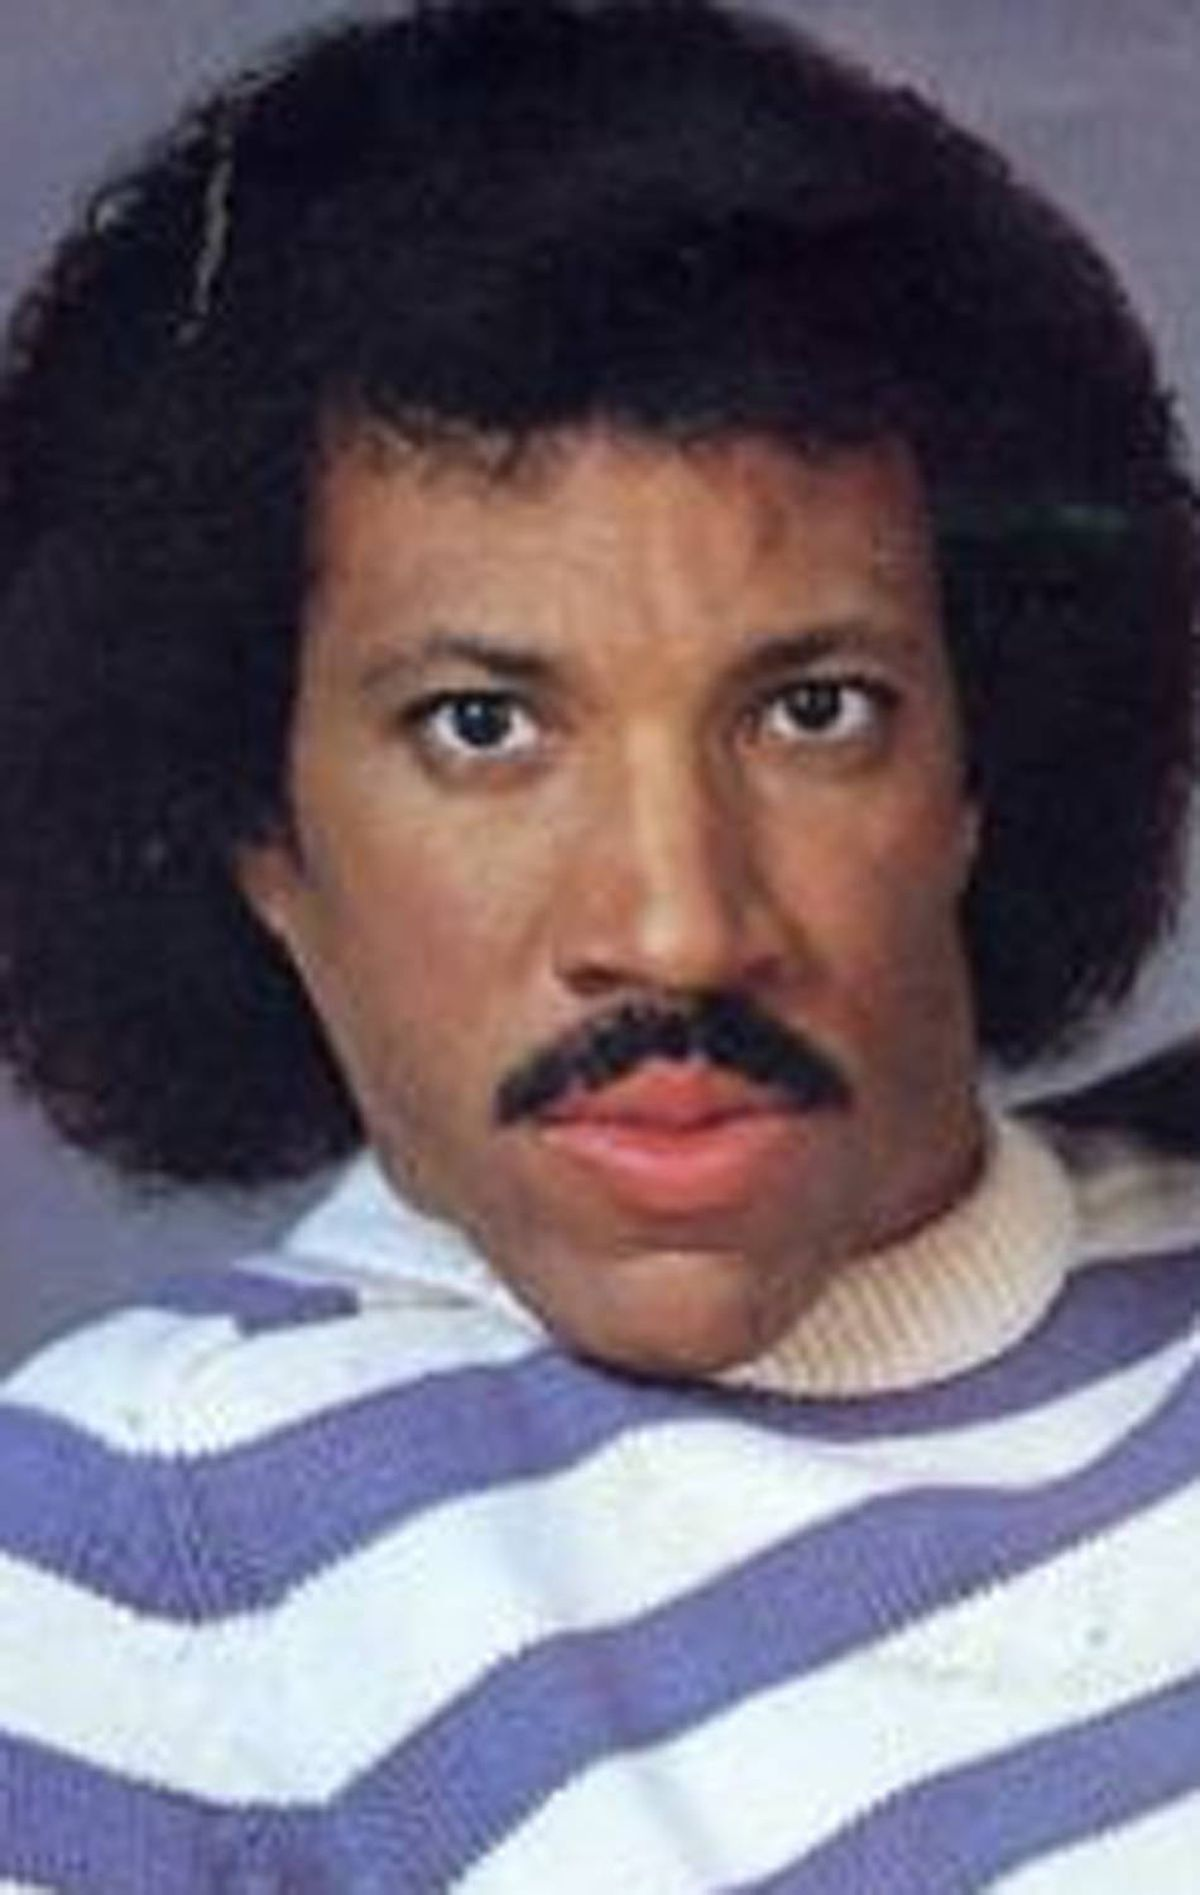 6. Lionel Richie Hello. Is it me you're looking for? Yes, yes it is.